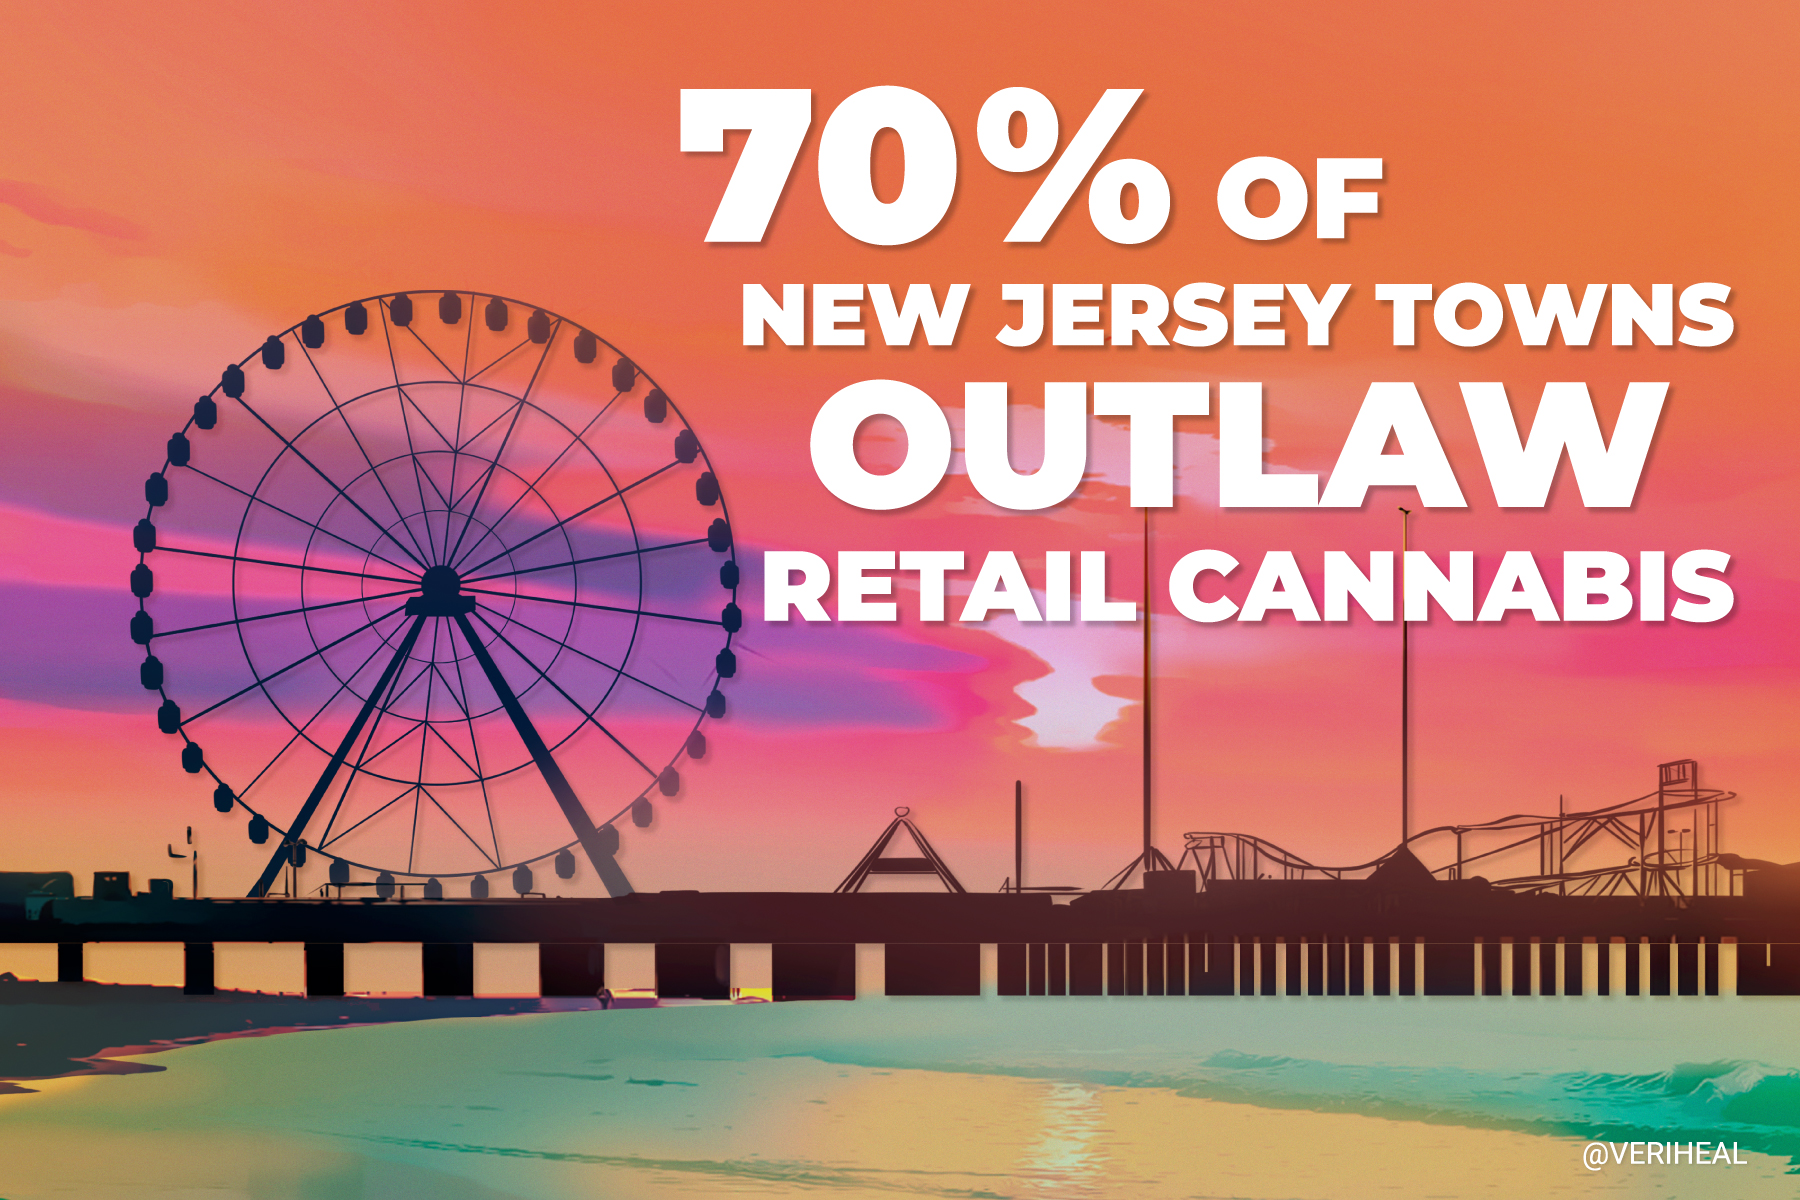 Over 70% of New Jersey Towns Outlawed Adult-Use Cannabis Retail Sales